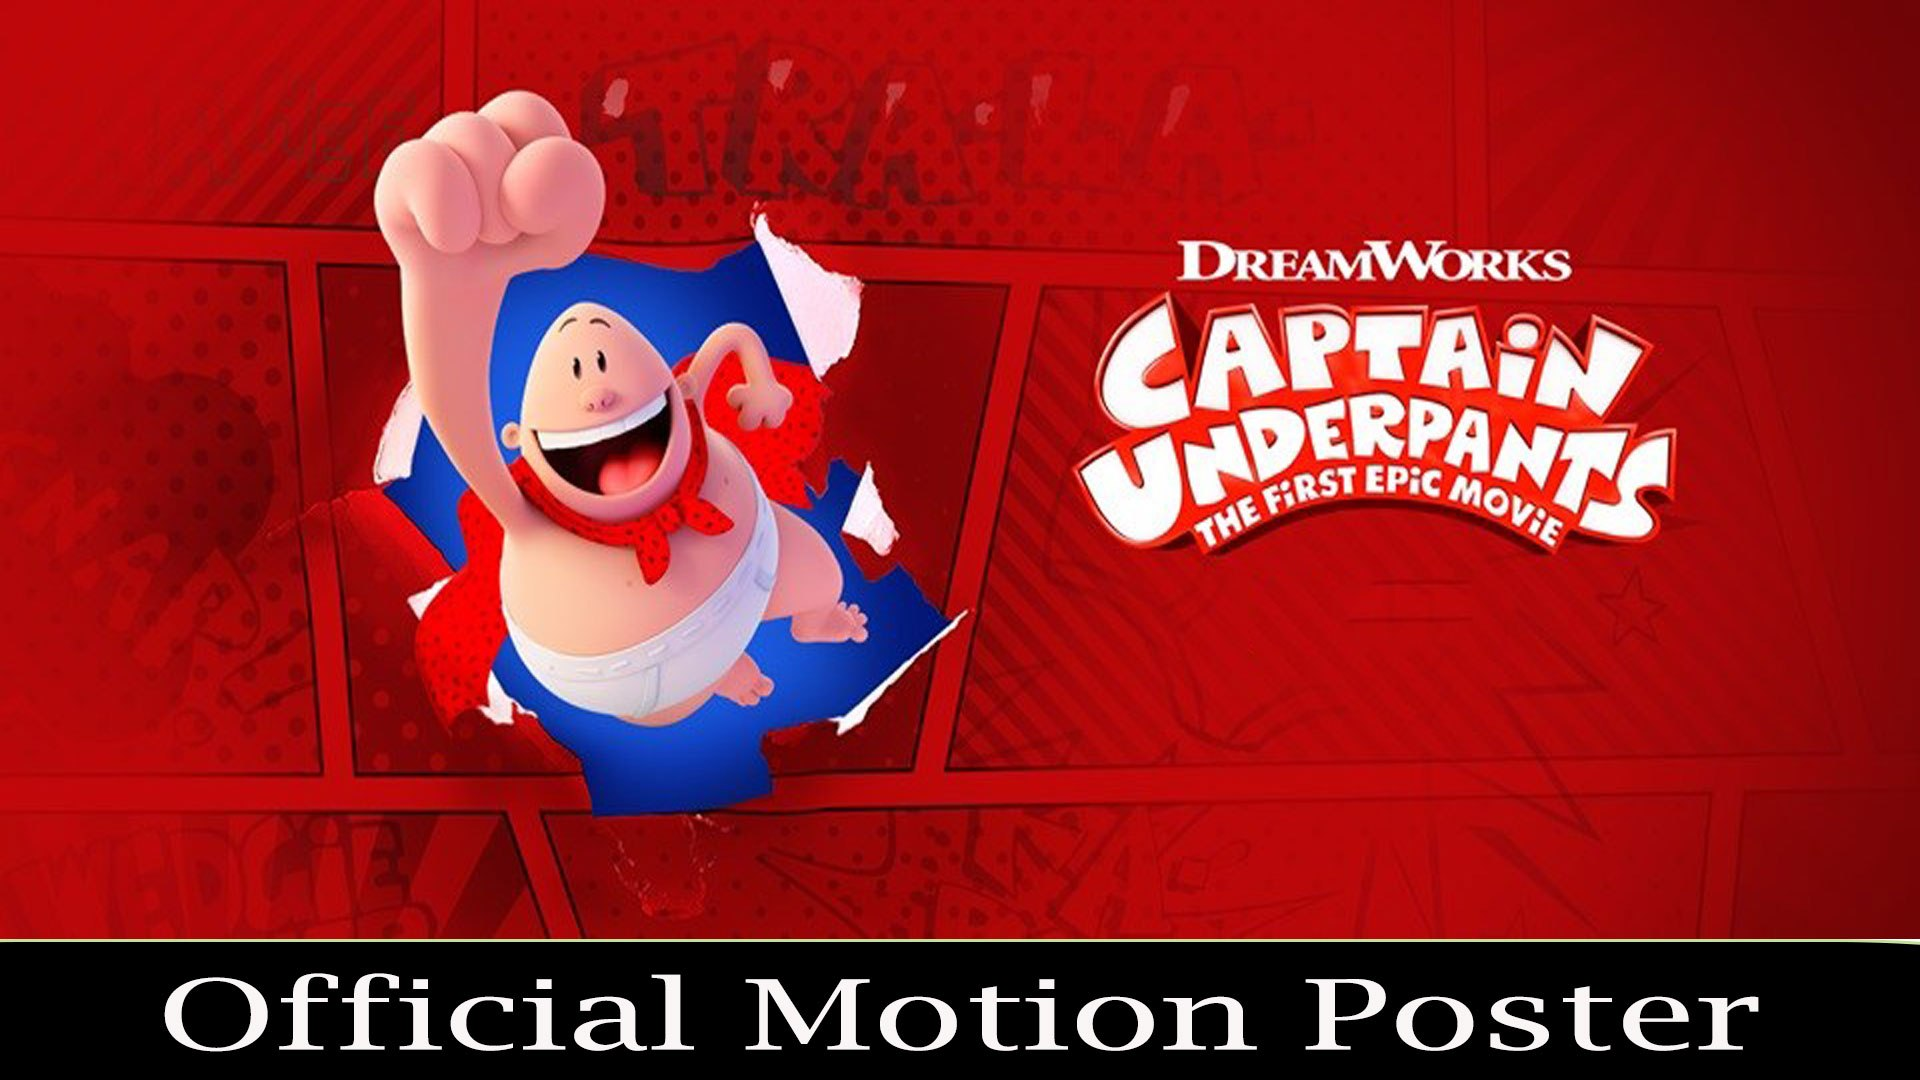 Captain Underpants The First Epic Movie | Official Motion Poster | Kevin Hart, Ed Helms & David